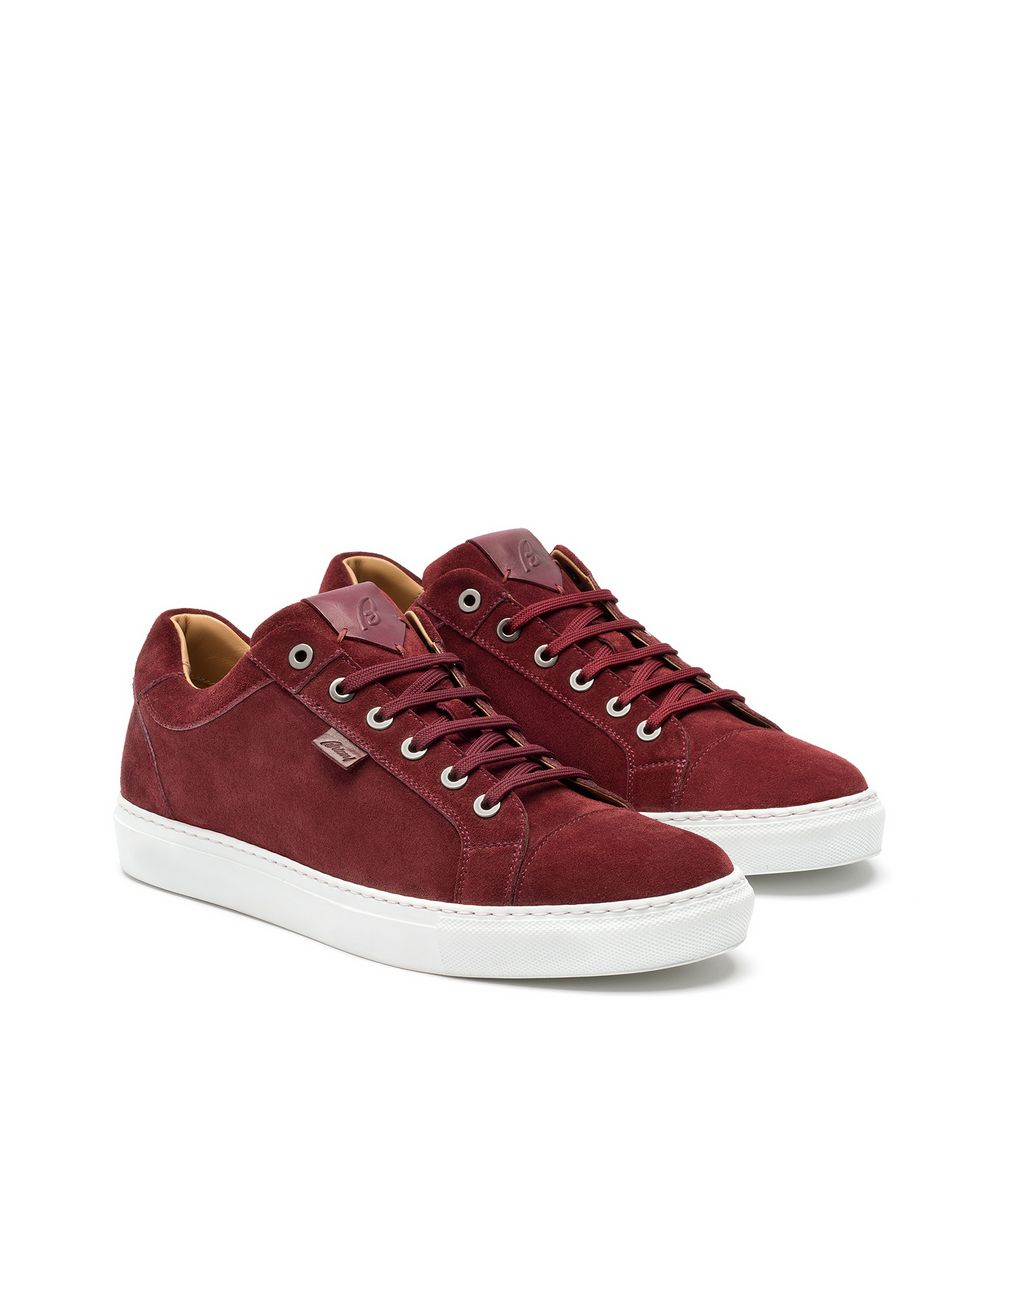 BRIONI Bordeaux Calfskin Suede Sneaker Sneakers [*** pickupInStoreShippingNotGuaranteed_info ***] d